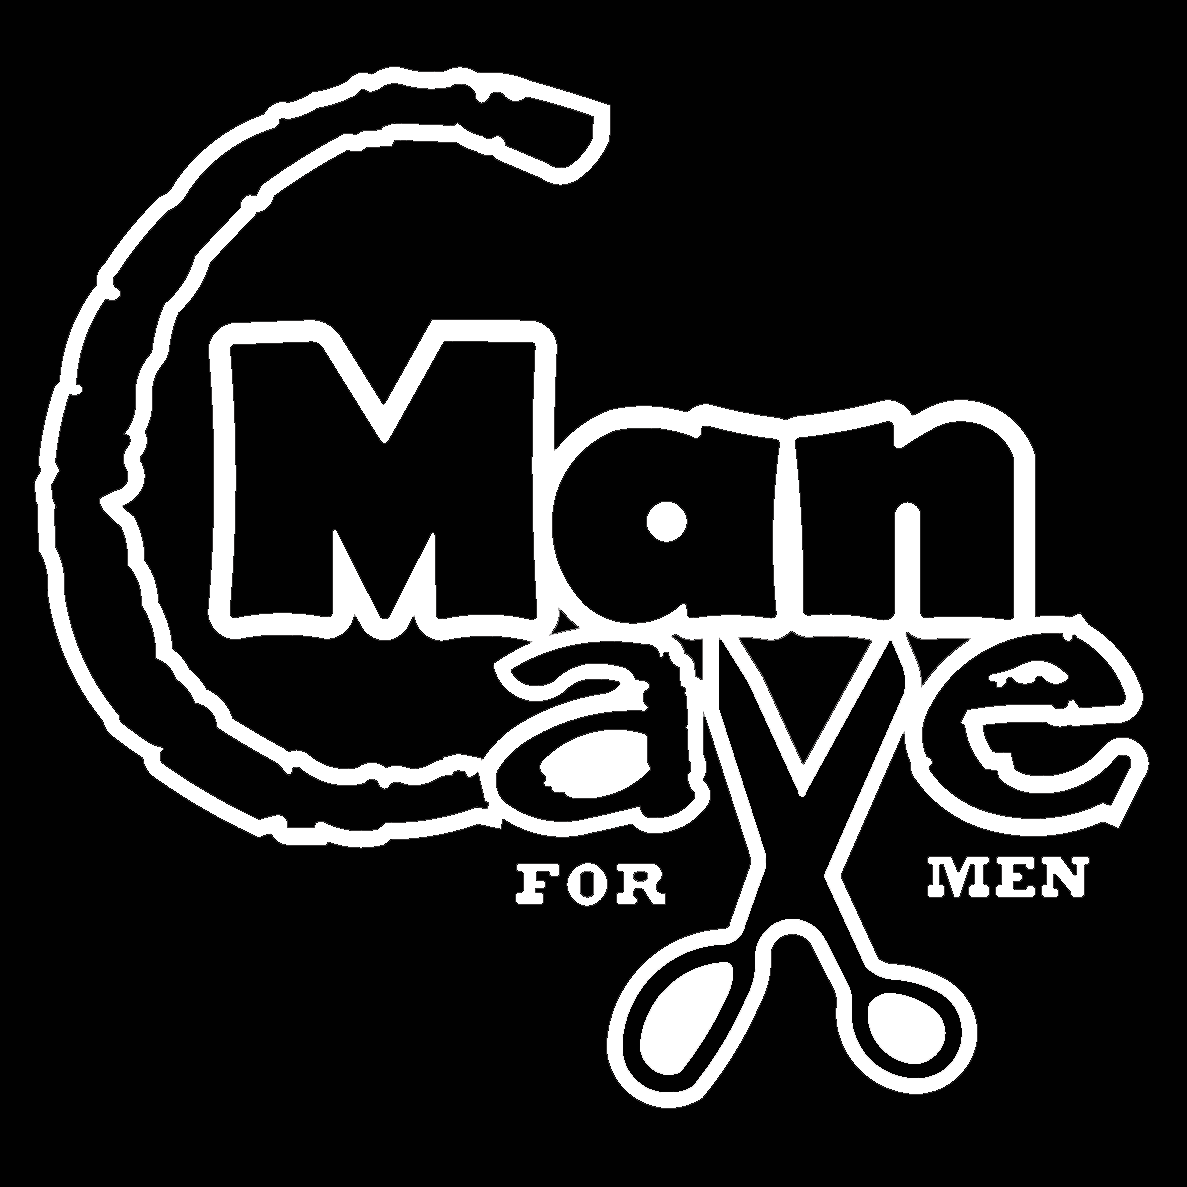 ManCave for Men